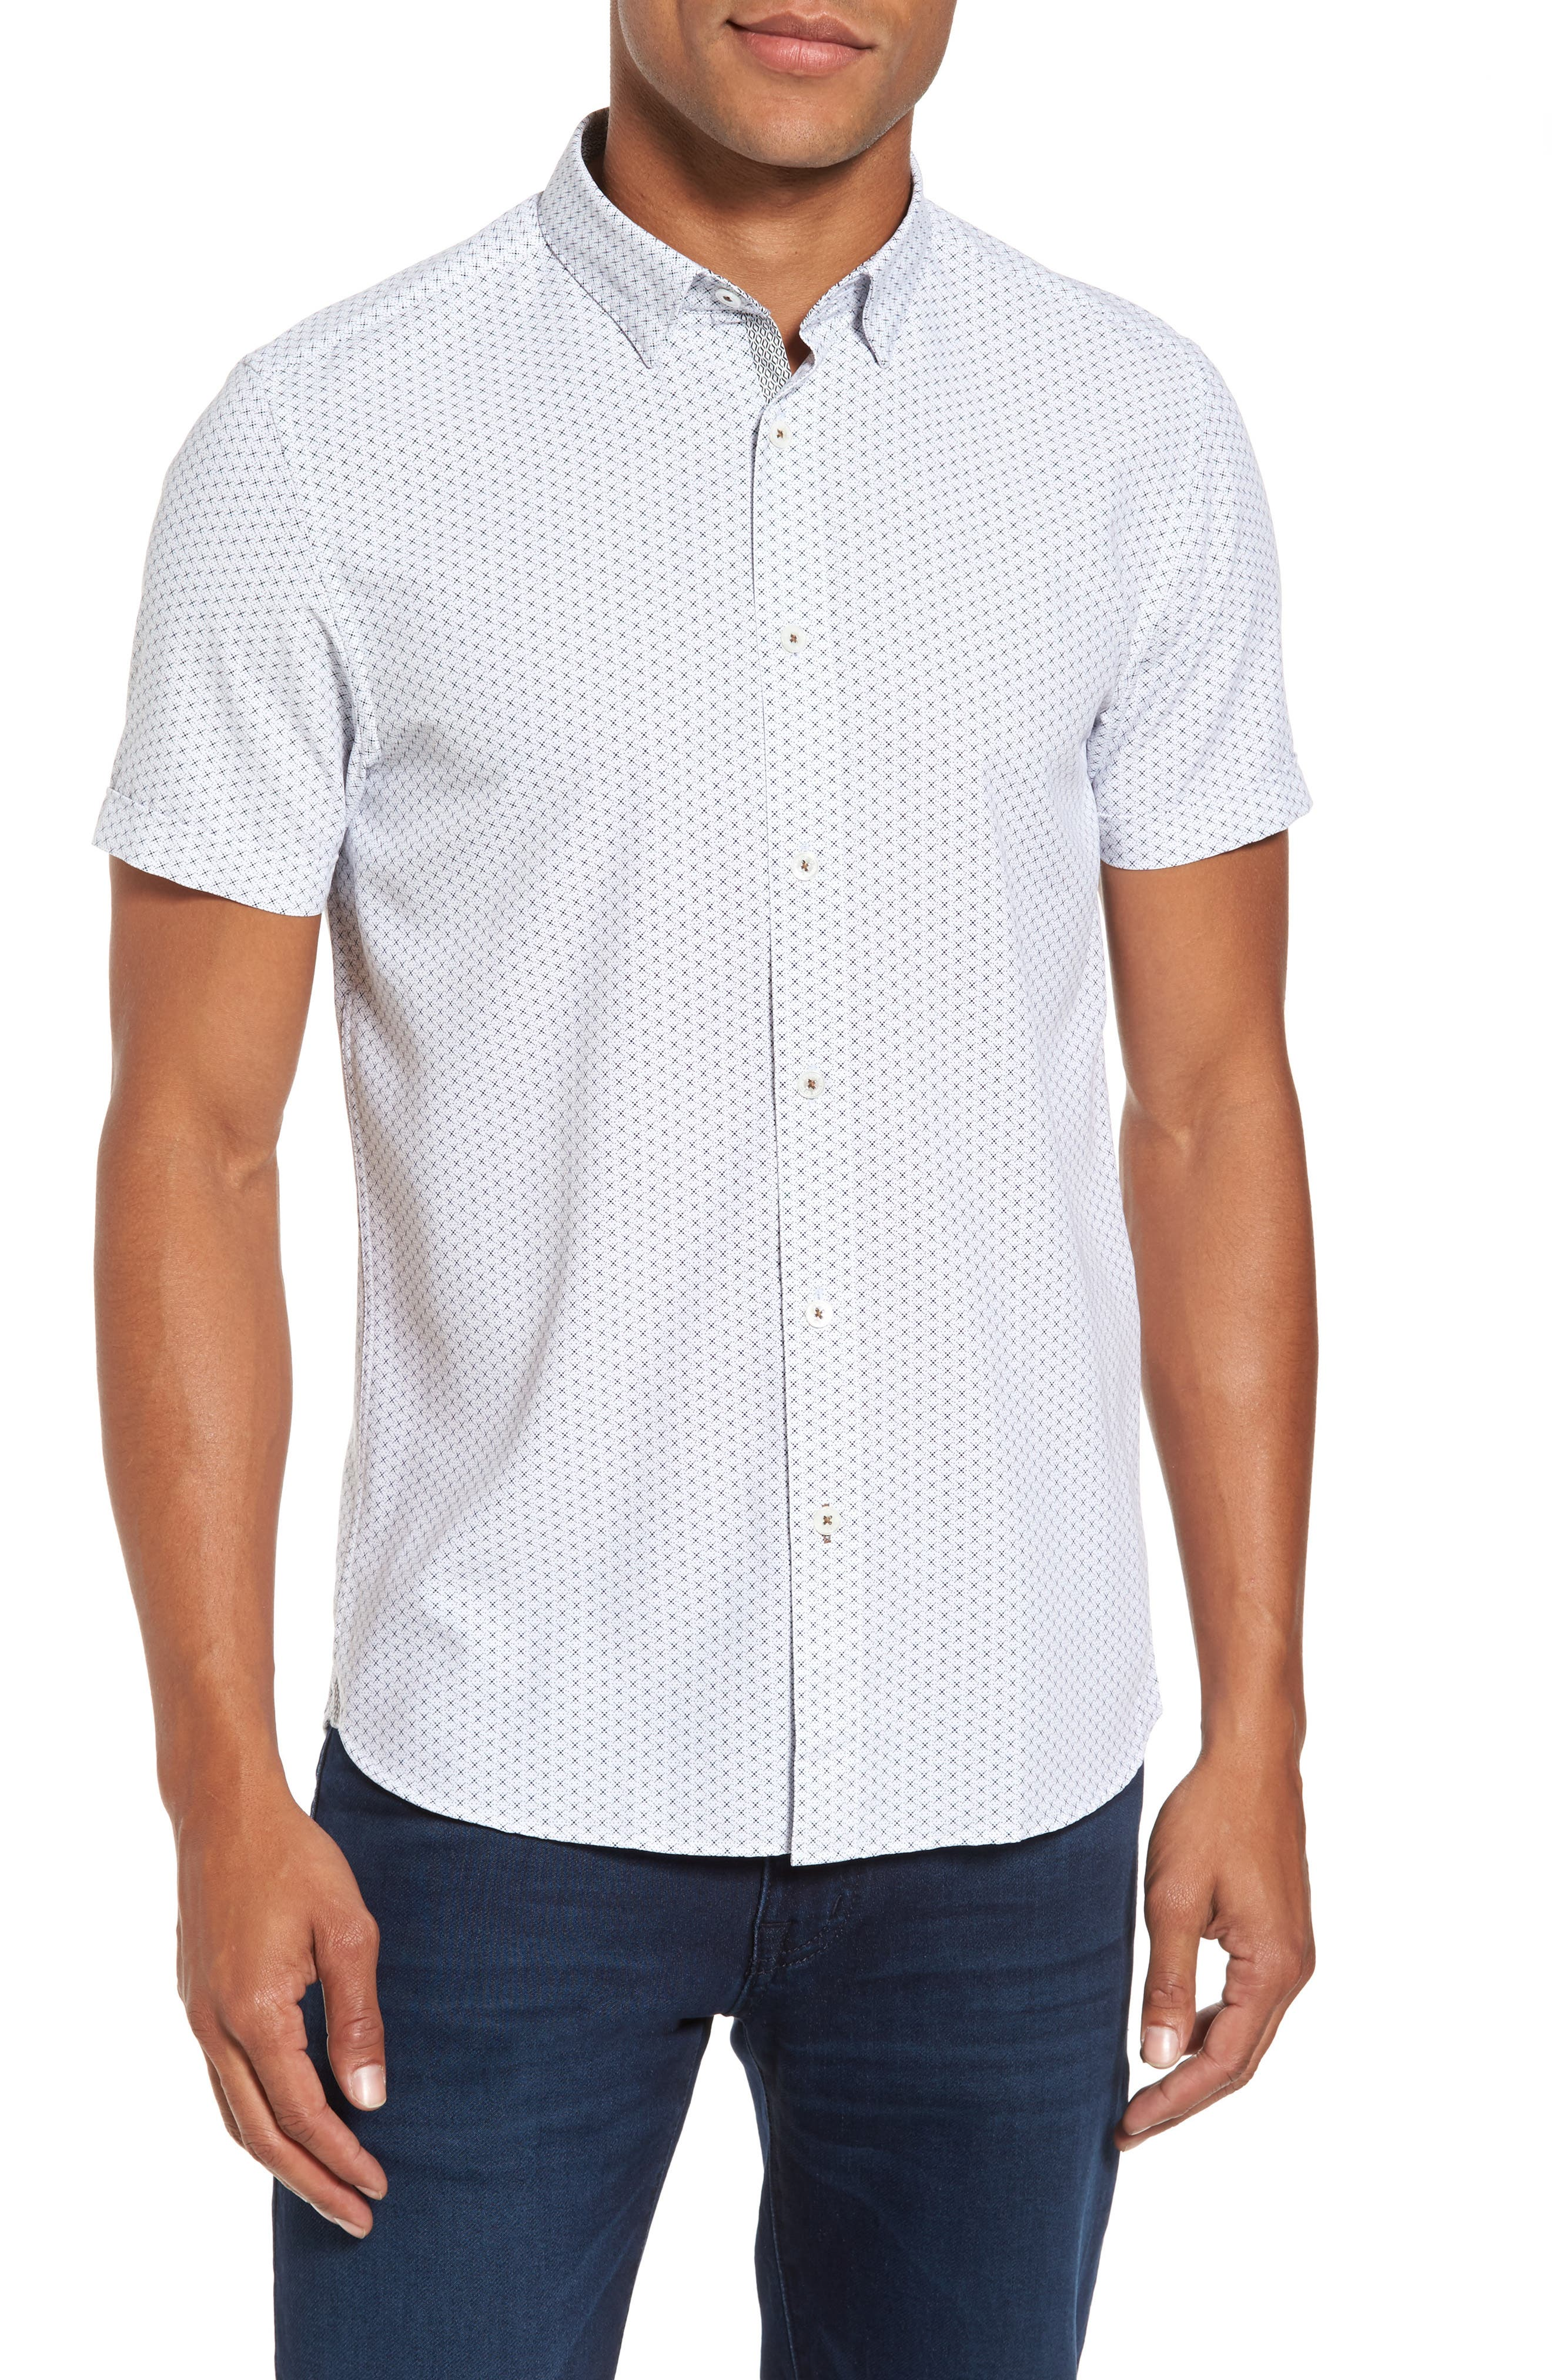 Alternate Image 1 Selected - Ted Baker London Geo Polynosic Slim Fit Woven Shirt